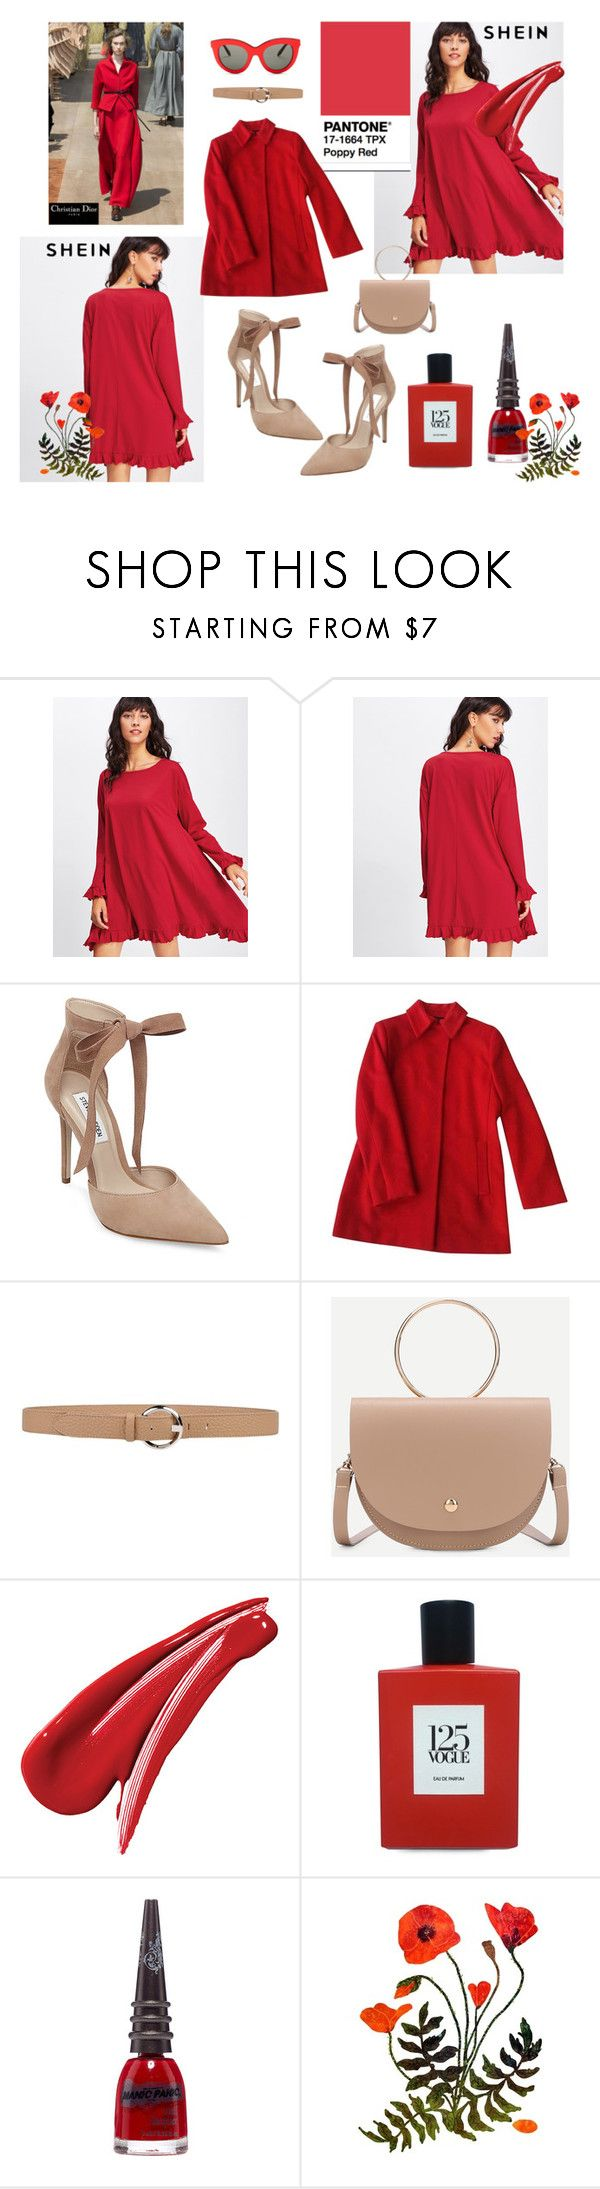 pop of colour by paisleyvelvetandlace on Polyvore featuring Jil Sander, Steve Madden, Victoria Beckham, Orciani, Comme des Garçons, Manic Panic NYC and Christian Dior